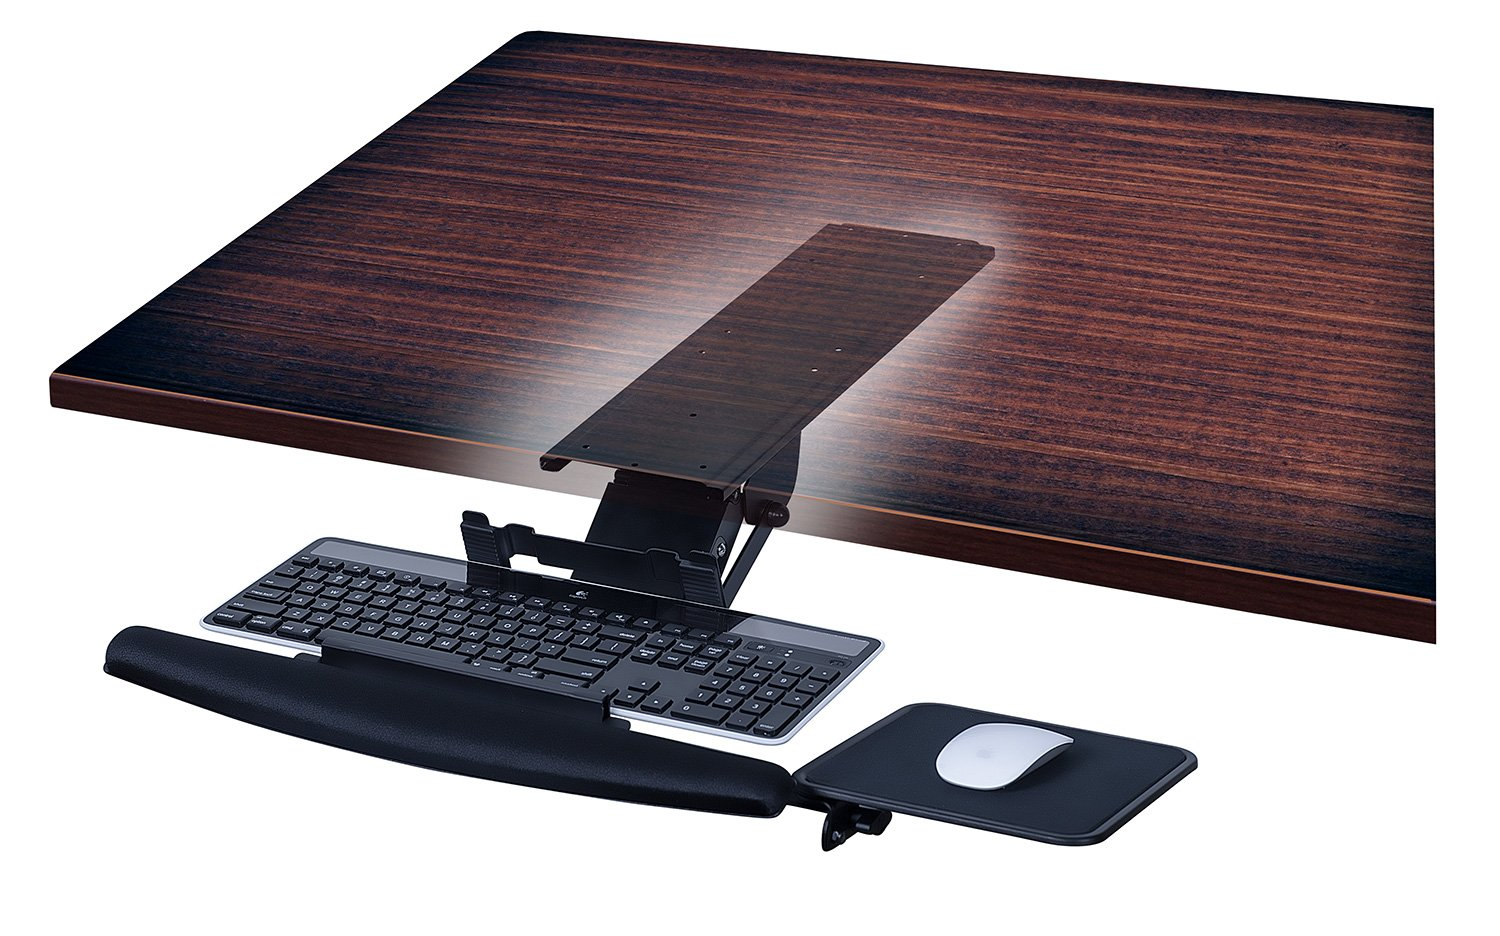 Mount-It! MI-7133 Underdesk Keyboard Tray Drawer, Ergonomic Gel Wrist Pad, Mouse Pad Included, Black